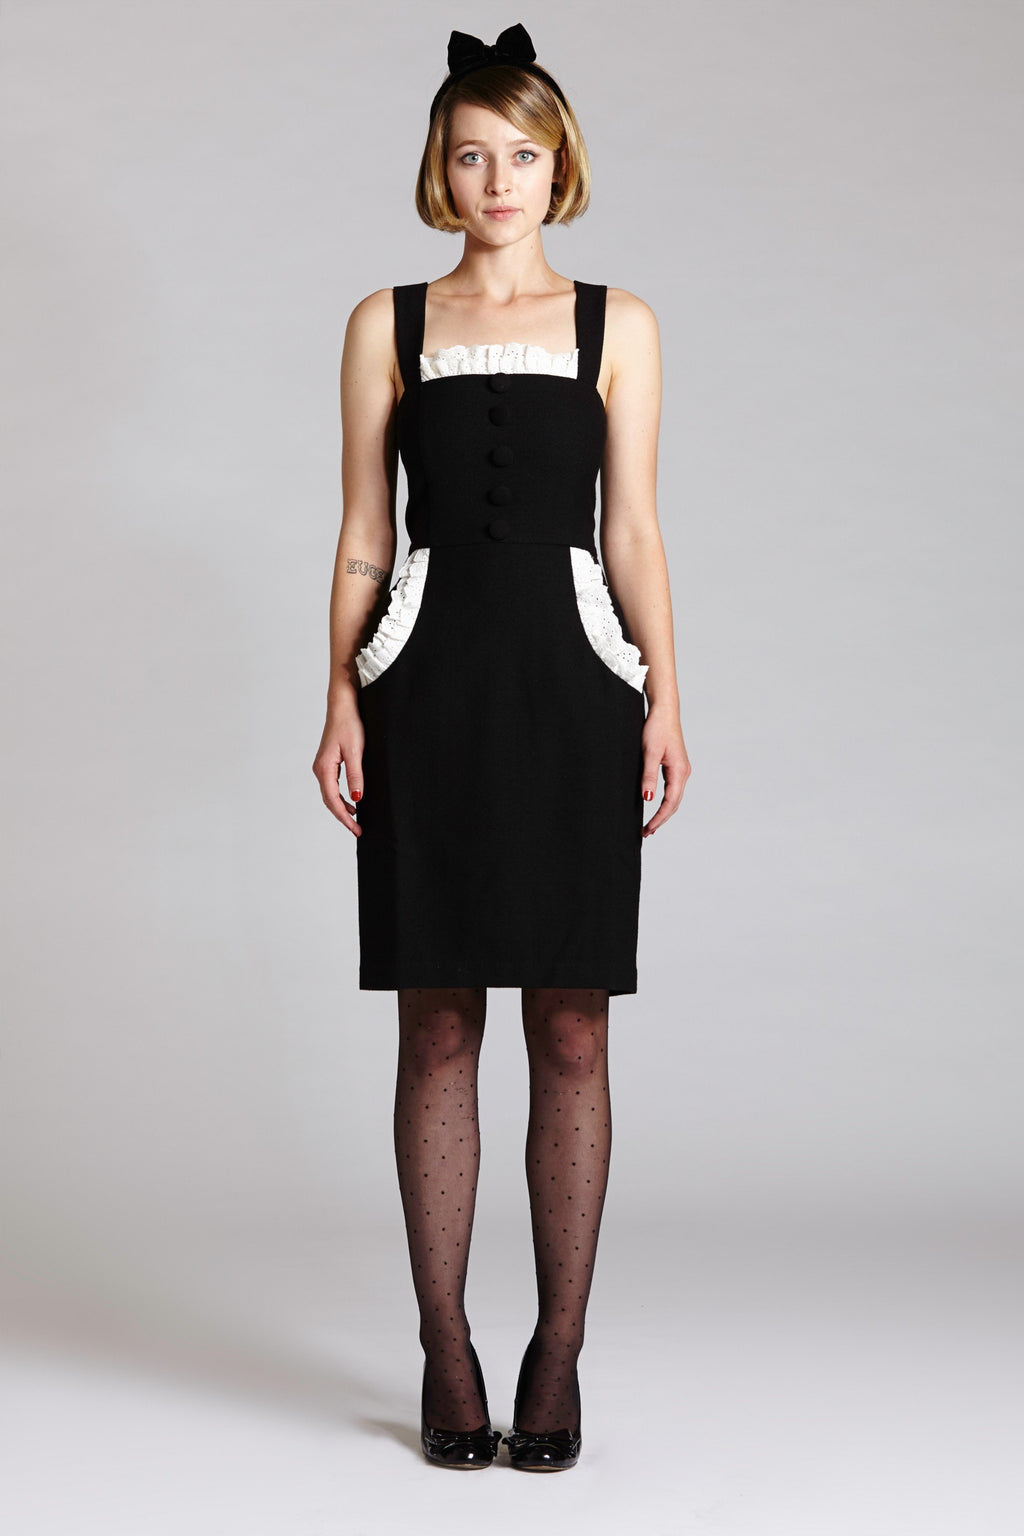 French Maid Strap Dress - L'école Des Femmes